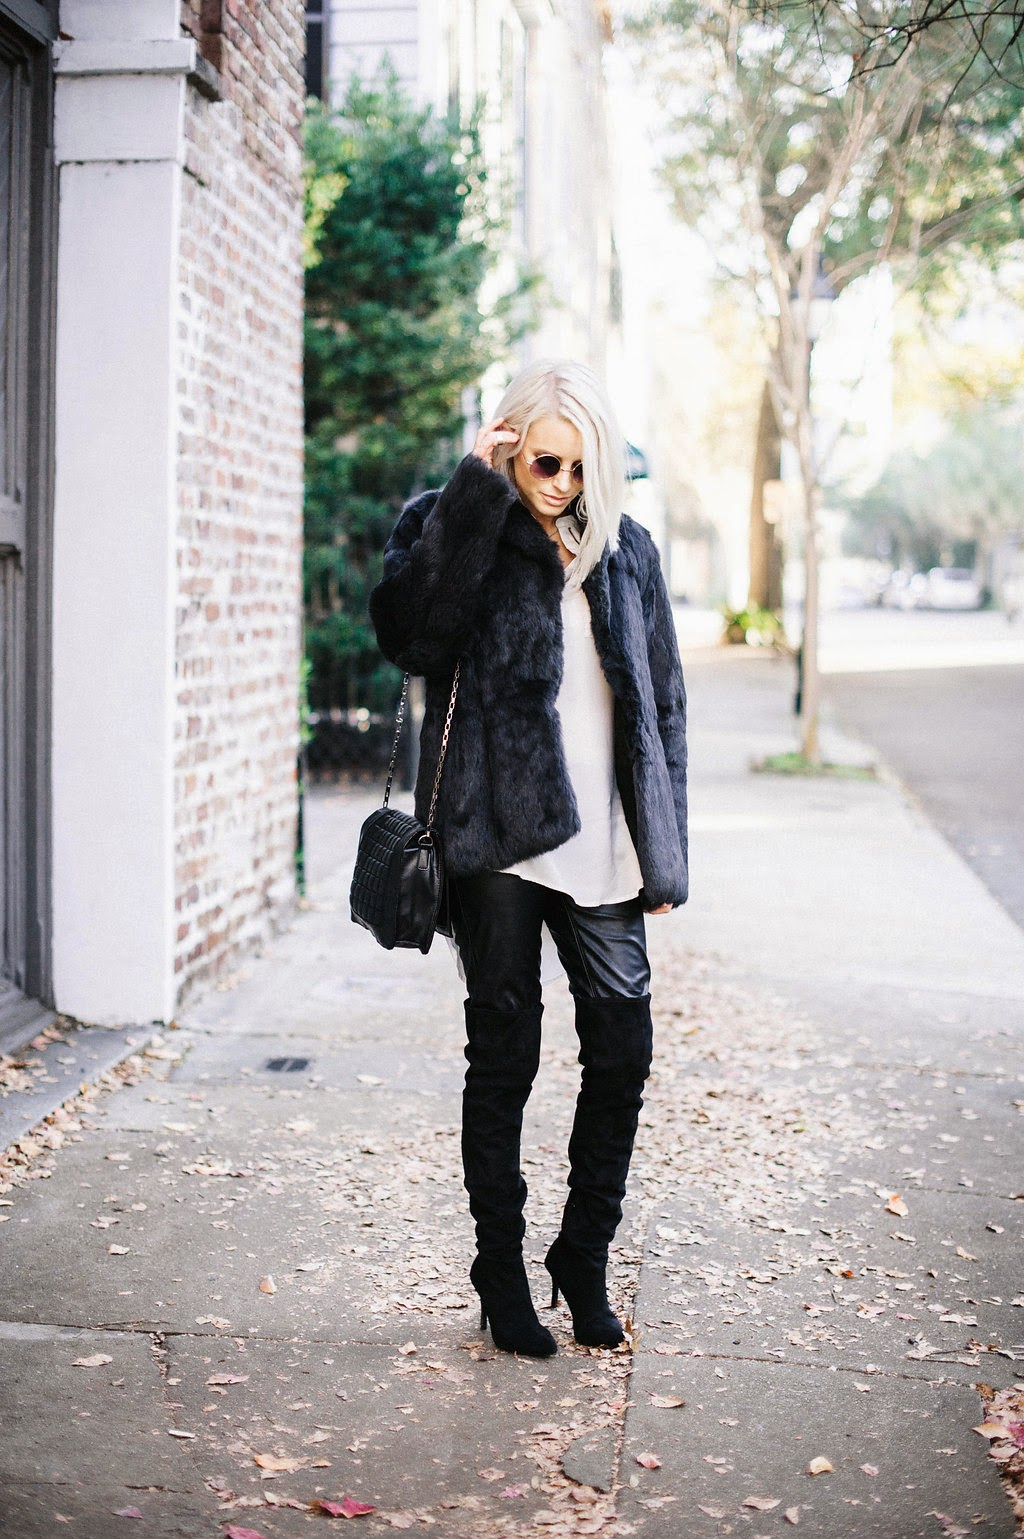 black fur coat thrift find goodwill chiffon white zip up tunic top shirt h&M forever 21 leather pants over the knee black suede boots thigh highs pointed high heels platinum blonde tousled straight hair long bob hairstyles of 2015 julianne hough jessica simpson look-a-like charleston street style sc south carolina fashion blogger cannon k collard like the yogurt